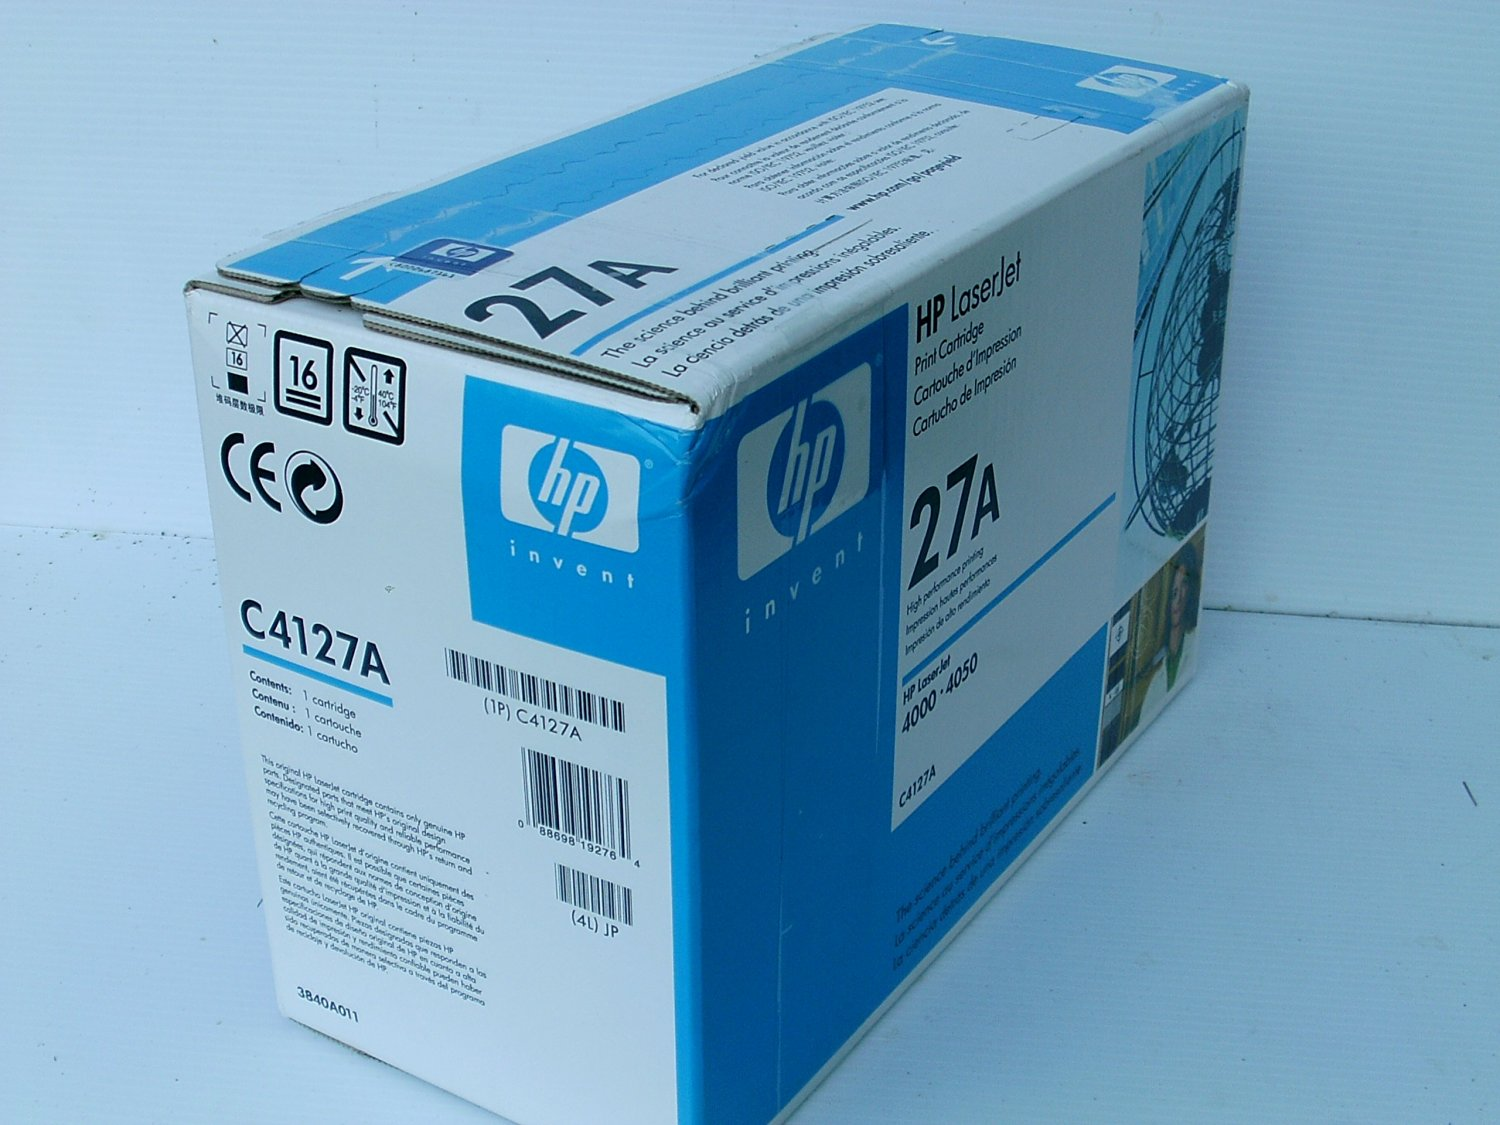 Hewlett Packard HP 27A LaserJet 4000, 4050 Series Ultraprecise Print Cartridge (6,000 Yield) , Part Number C4127A